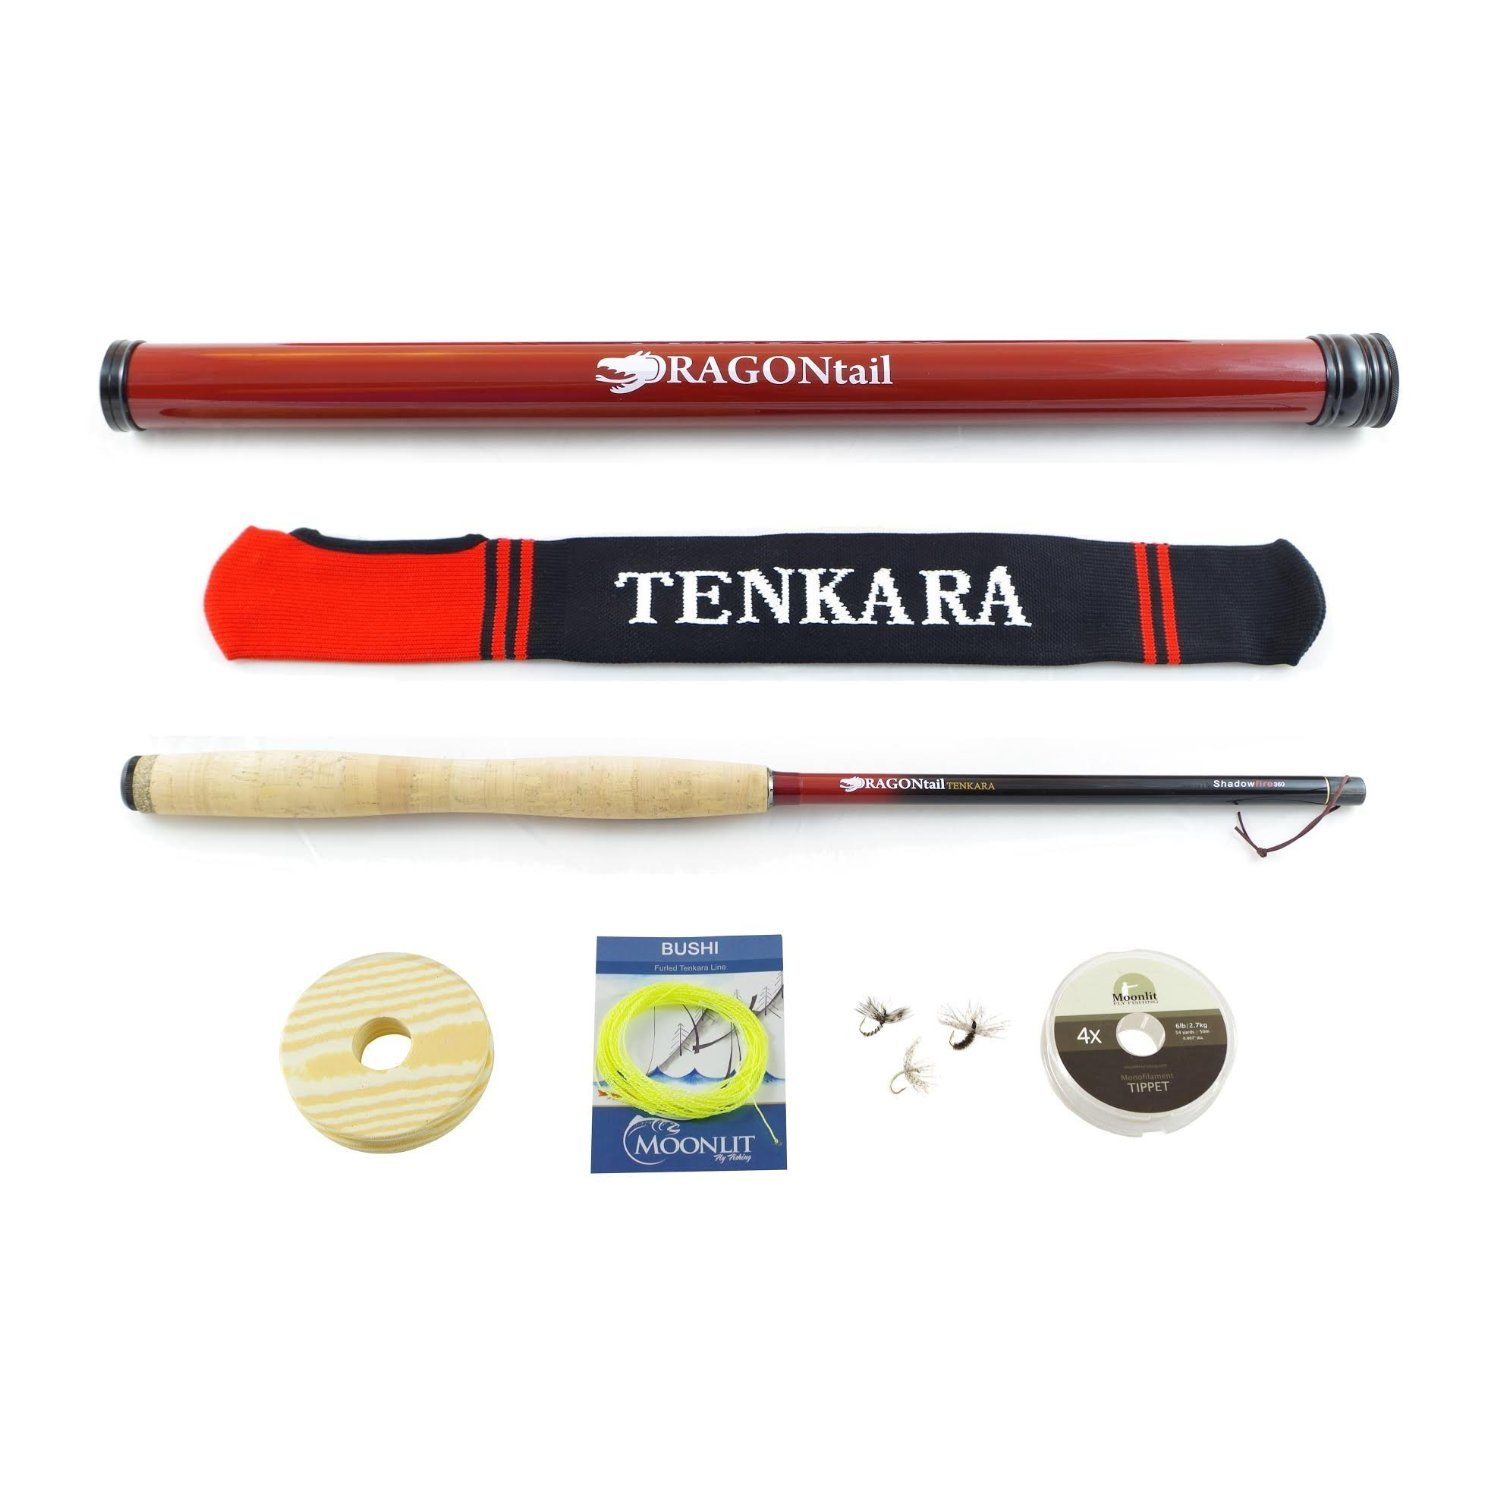 DRAGONtail Tenkara Shadowfire 12' Tenkara Rod PLUS Complete Starter Package – Flies, Leader, Tippet, Line Holder, Storage Tube, and Rod Sock by DRAGONtail Tenkara